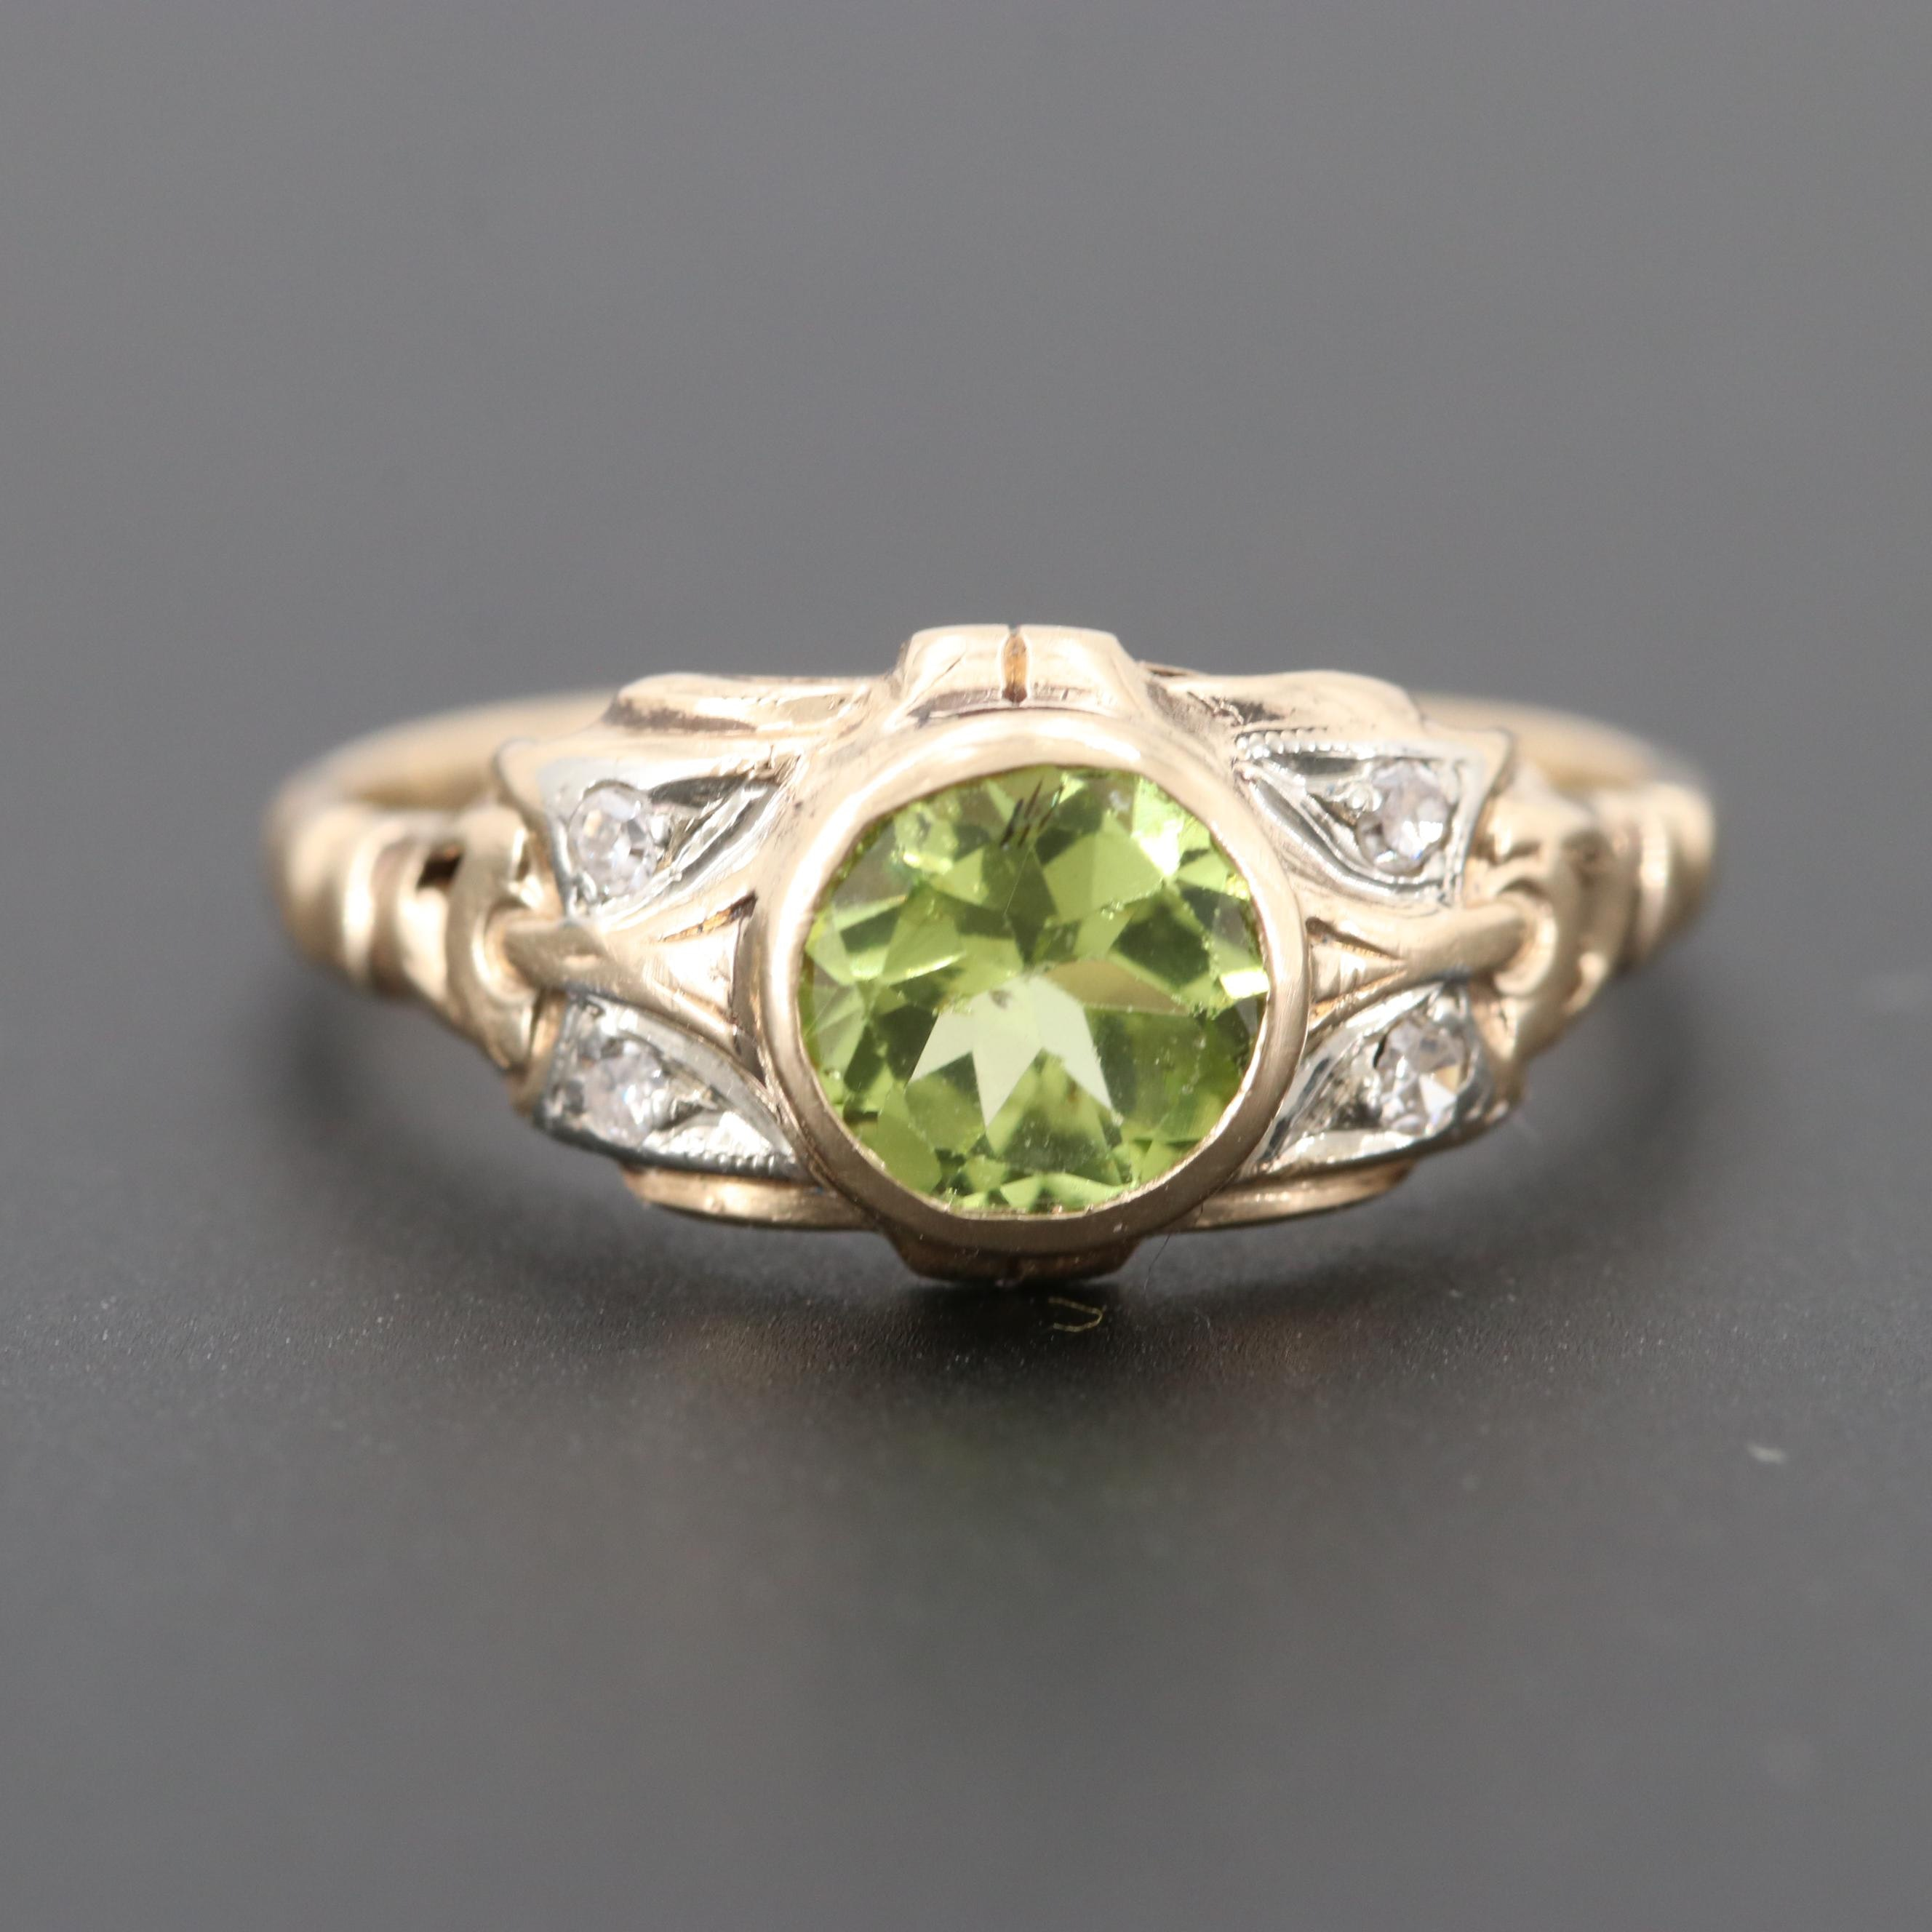 Vintage 1930s 14K Yellow Gold Peridot and Diamond Ring with White Gold Accents